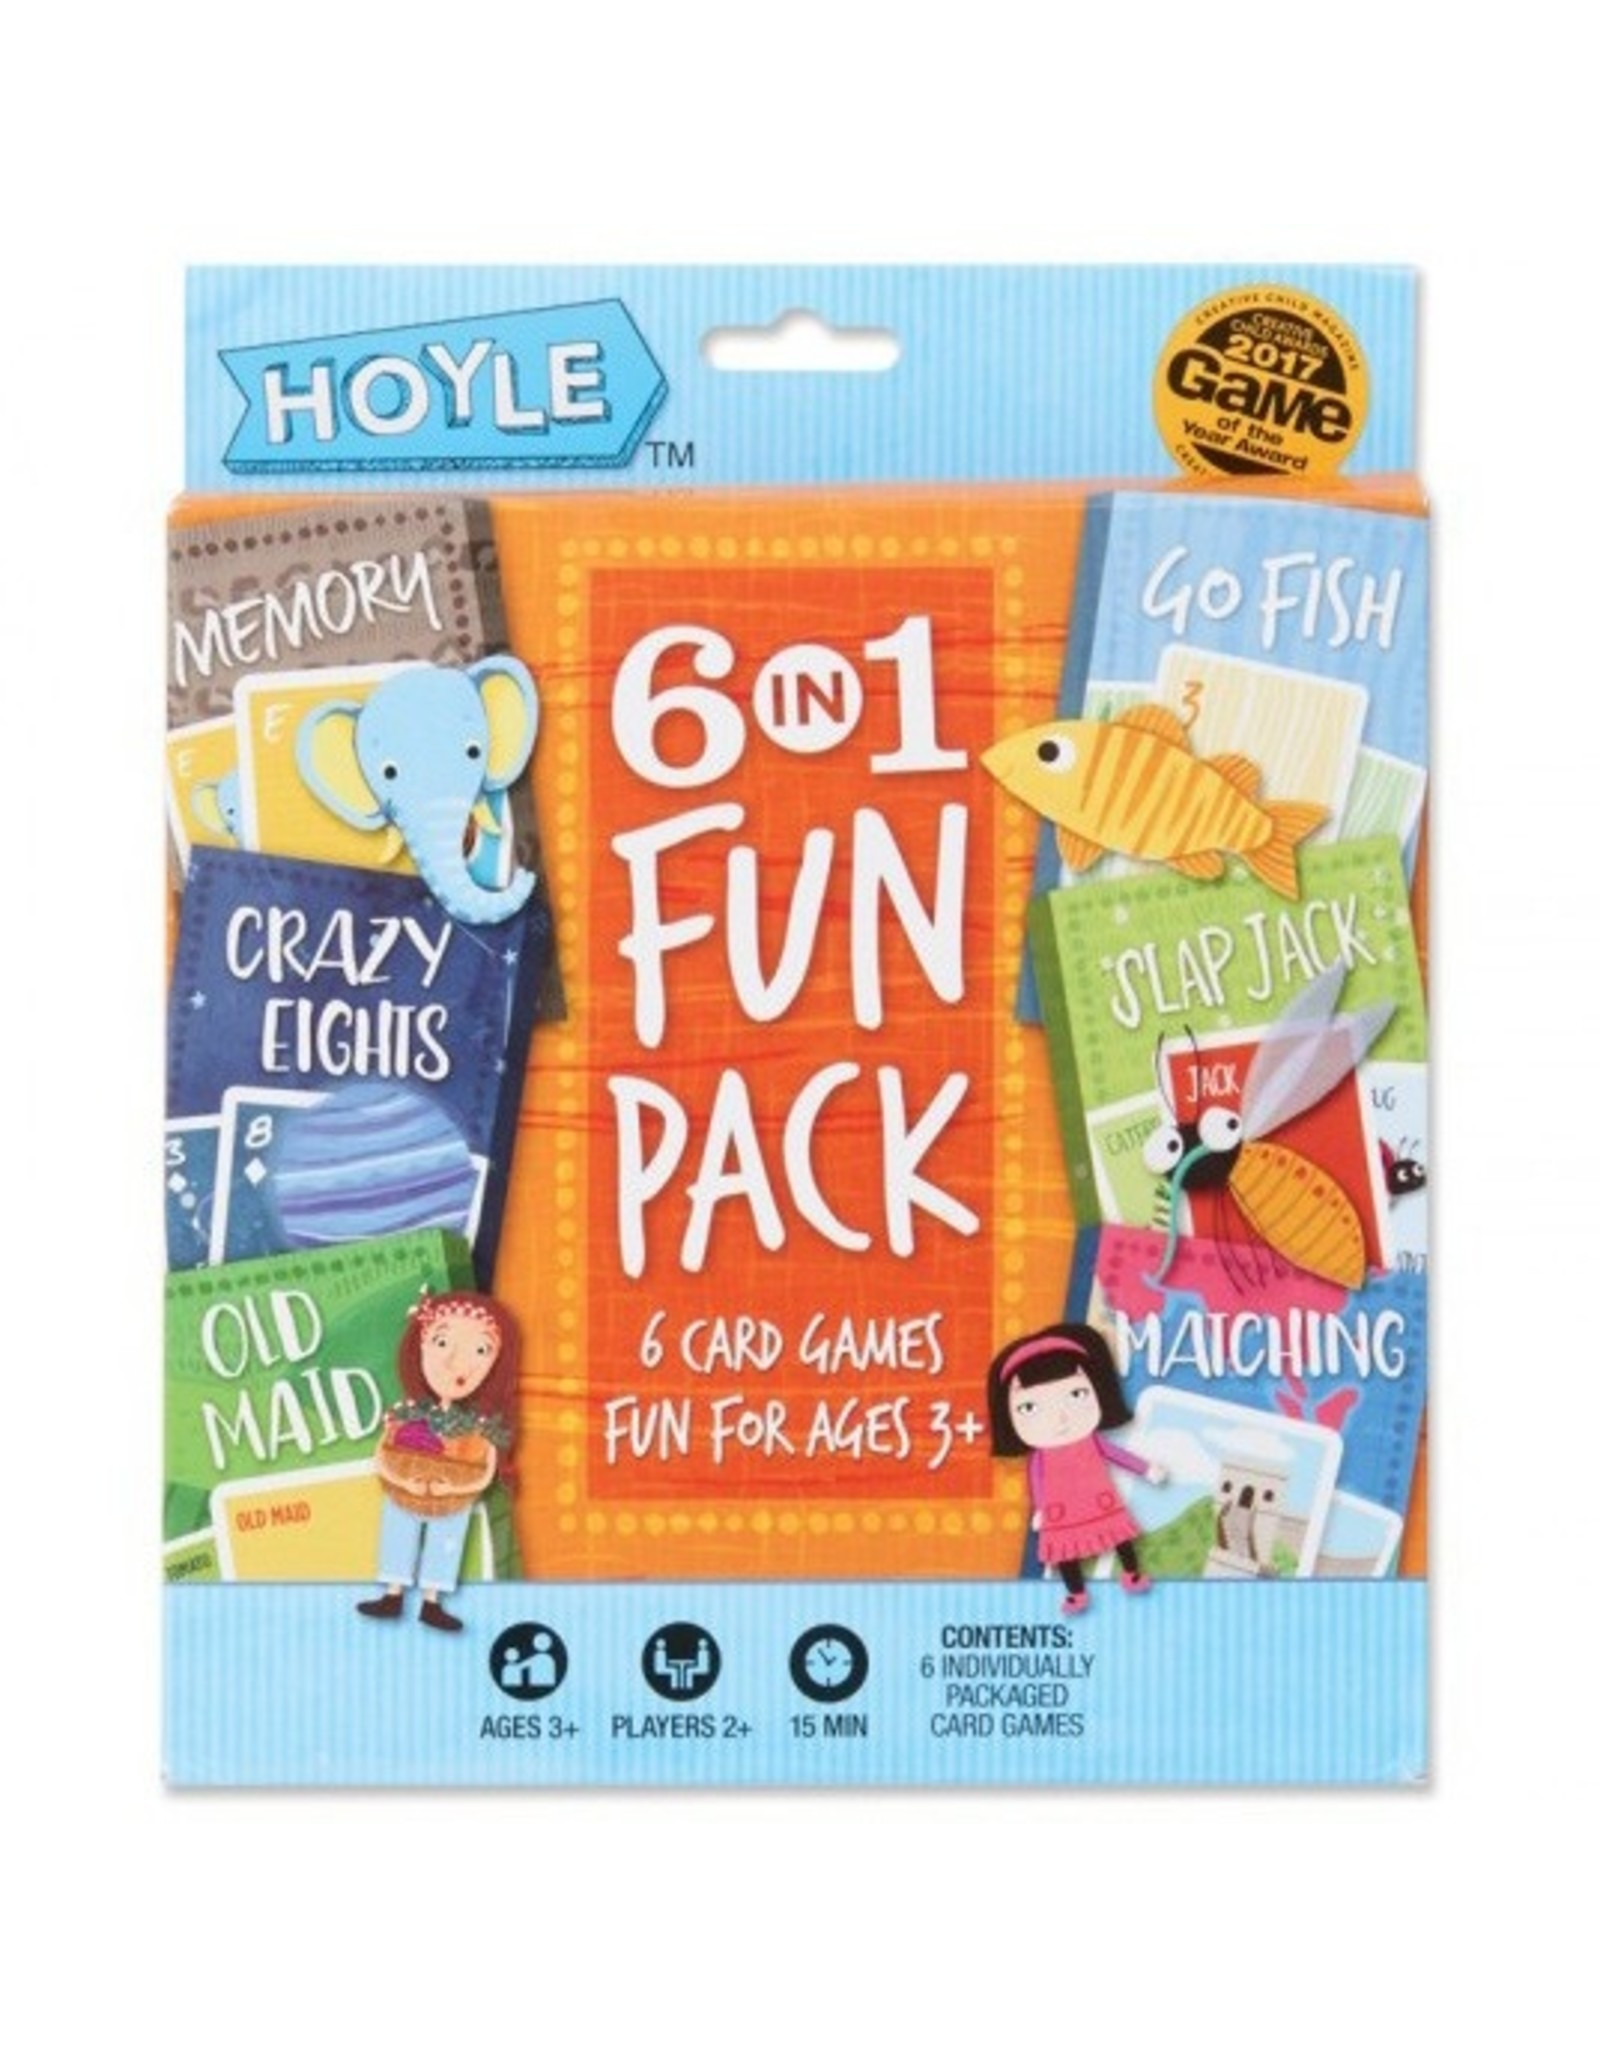 Bicycle Child Card Games: 6 in 1 Fun Pack